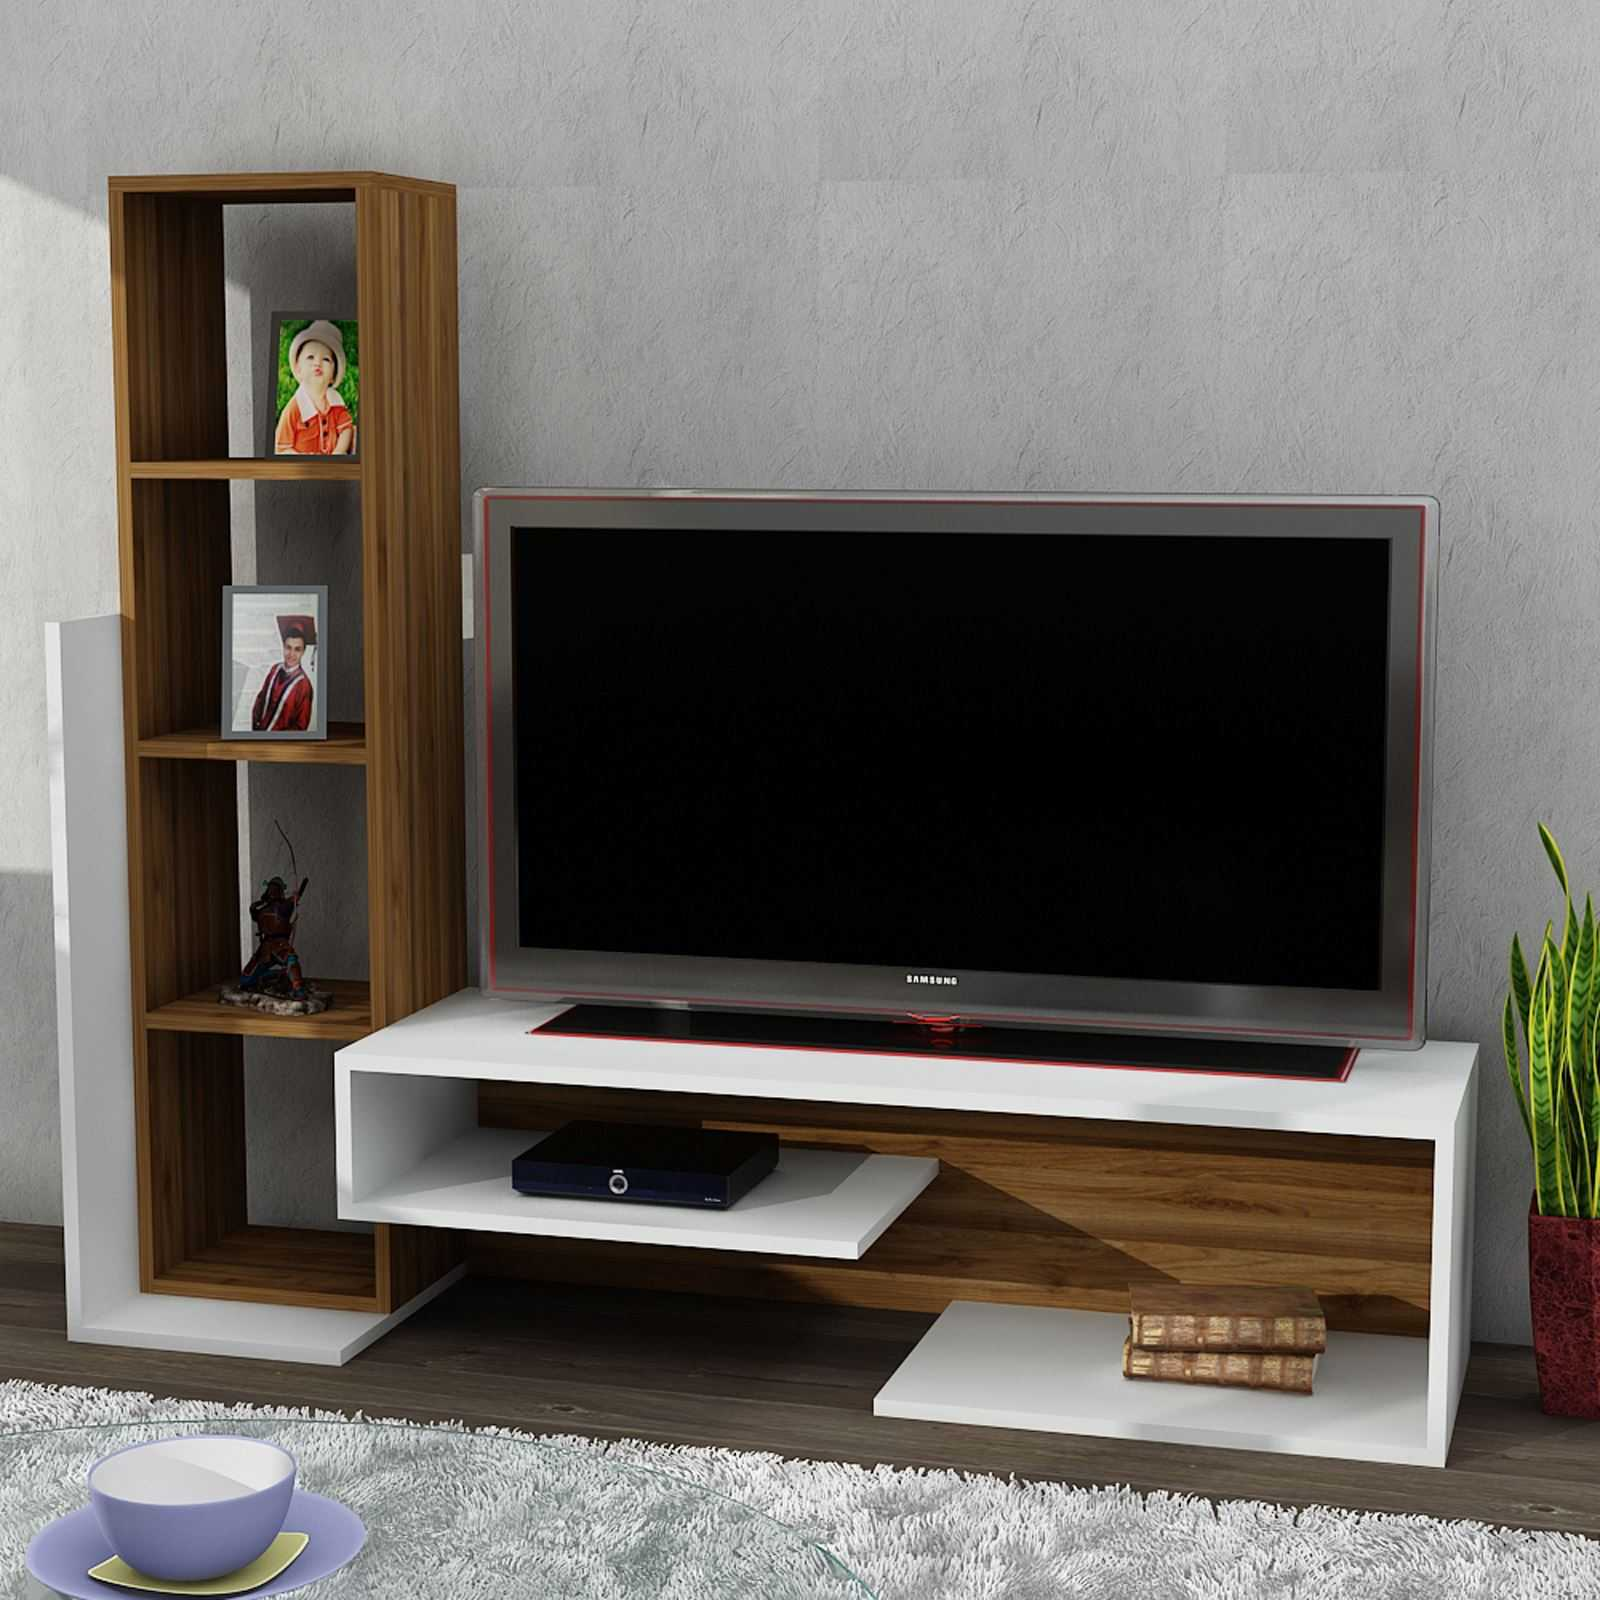 Wooden Art Meuble Wooden Art Meuble Tv Naturel Brandalley